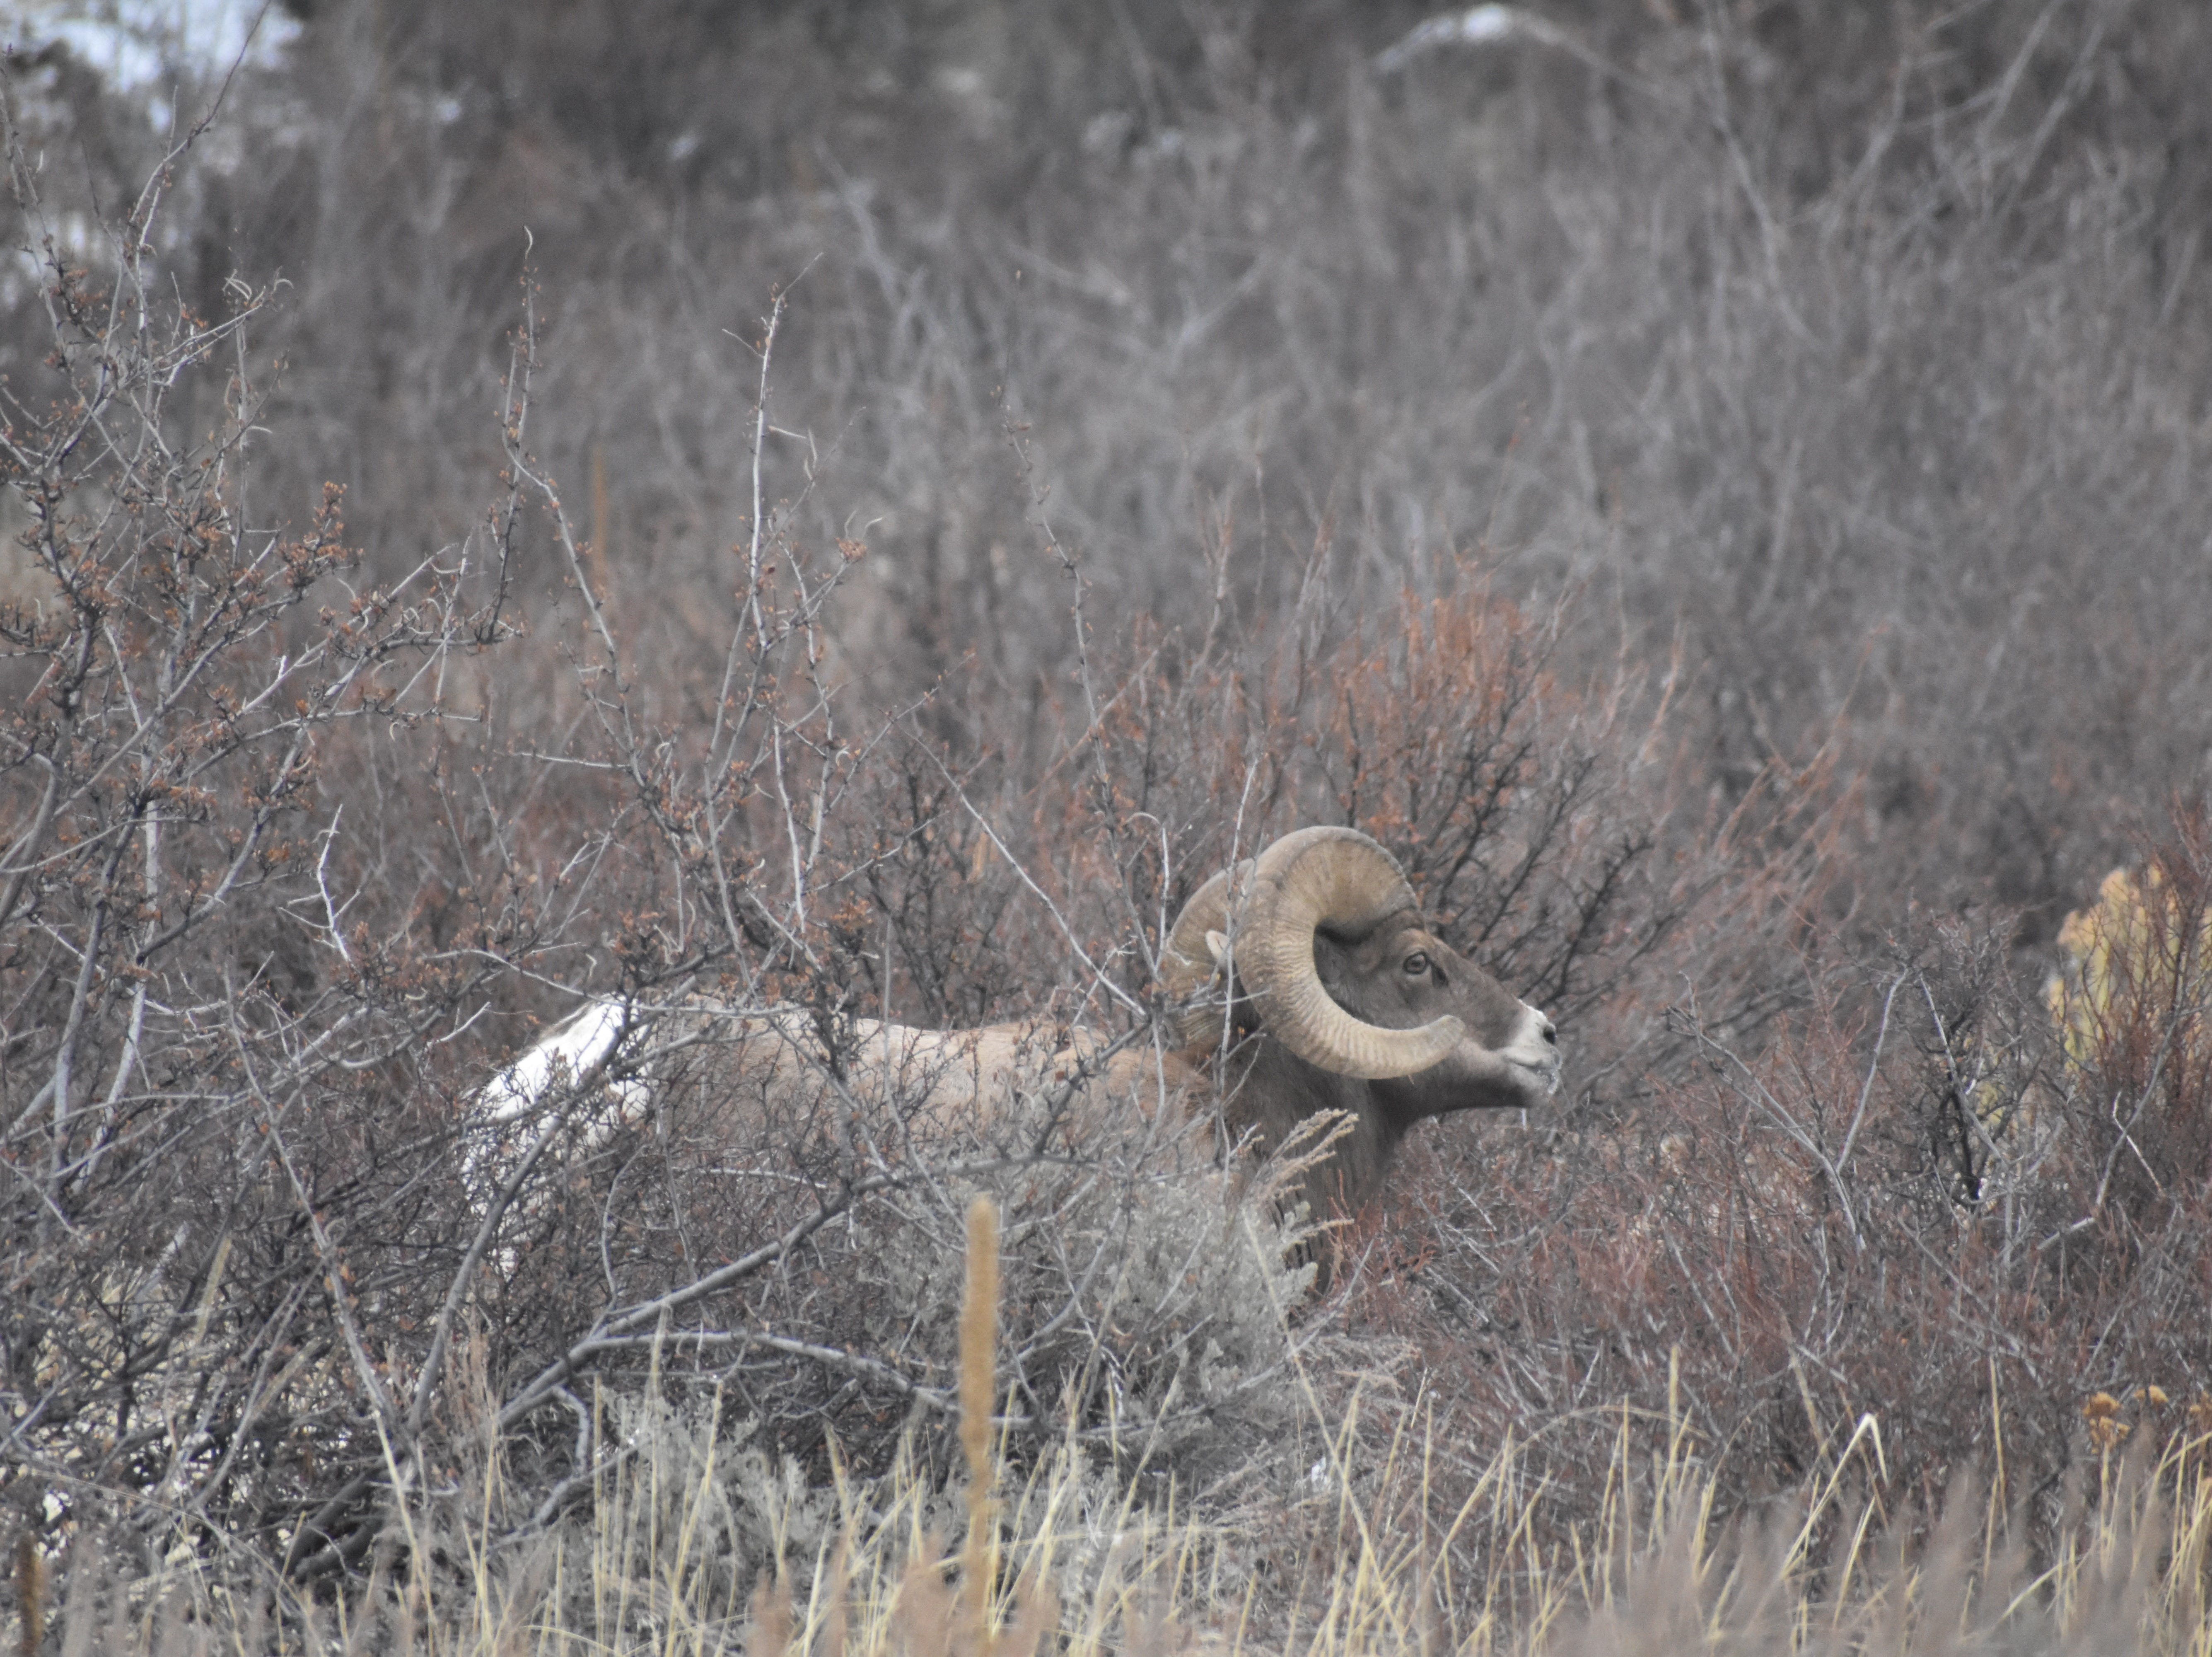 Colorado Parks and Wildlife estimates the state's bighorn sheep population to be just less than 7,000, including about 100 in the Poudre Canyon.